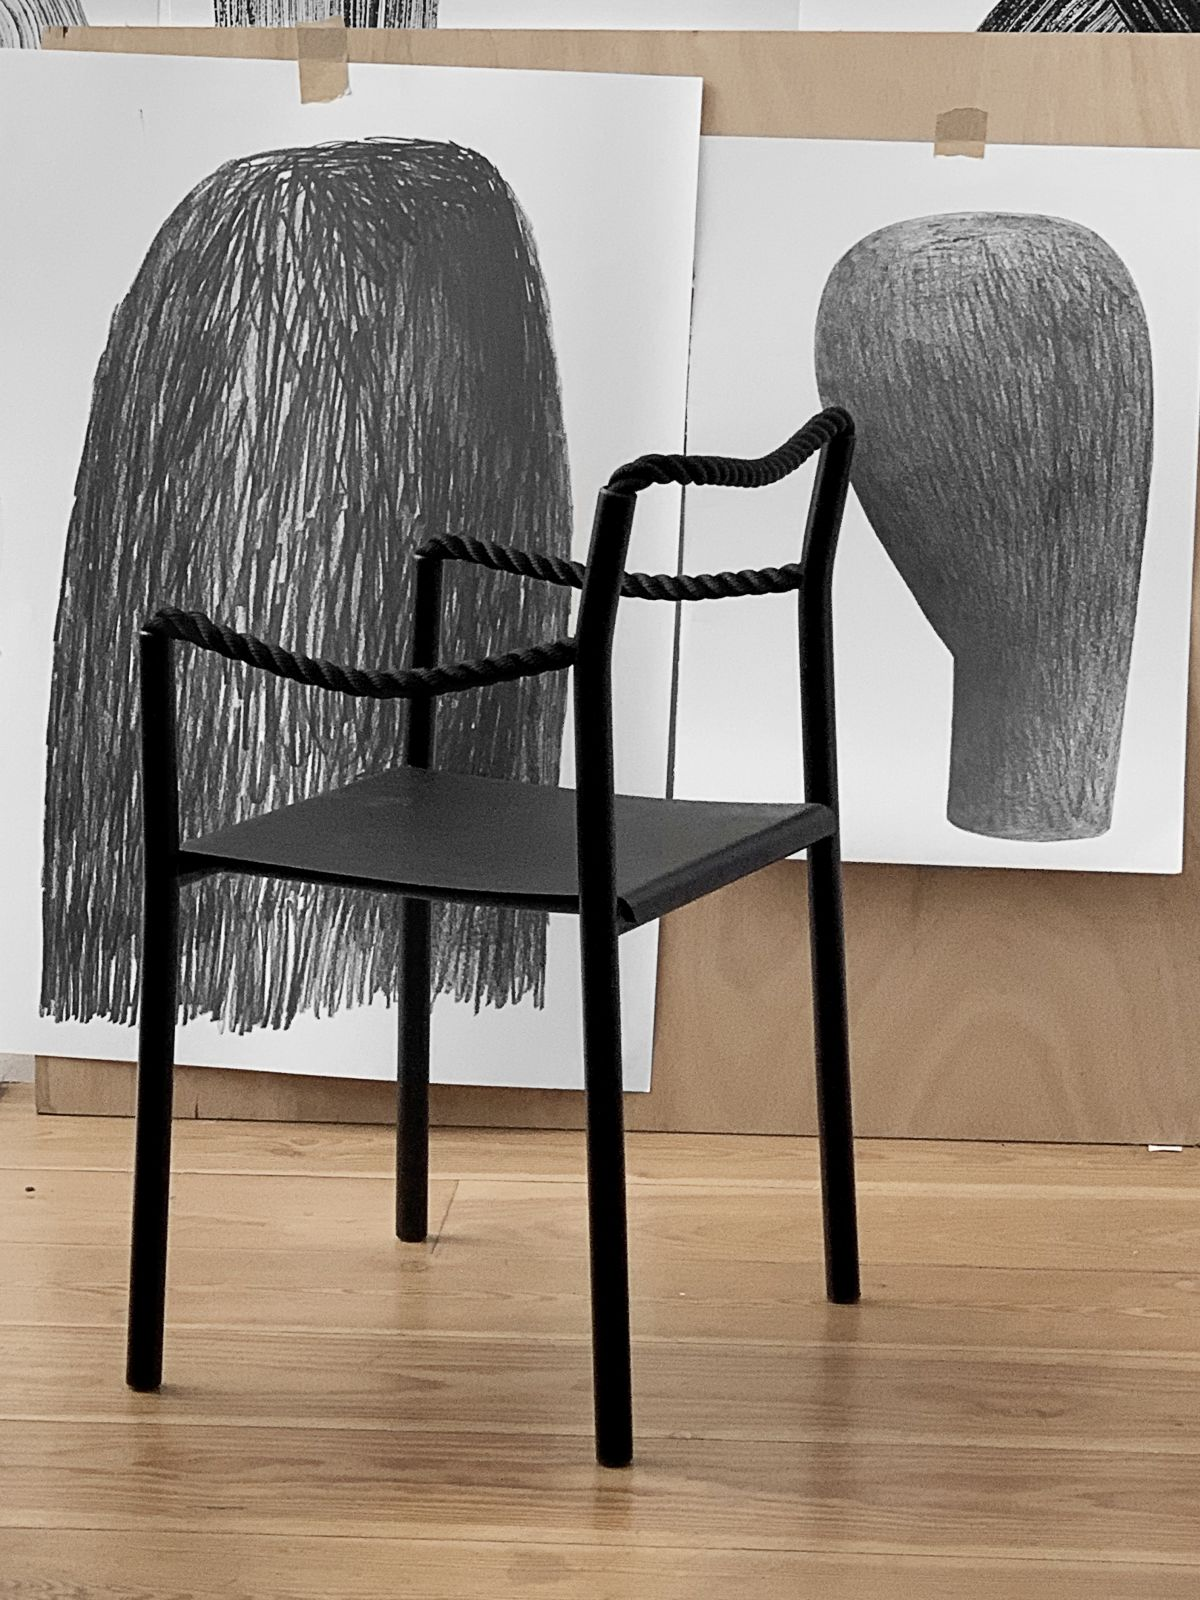 Rope-chair-Studio-Bouroullec-3679199